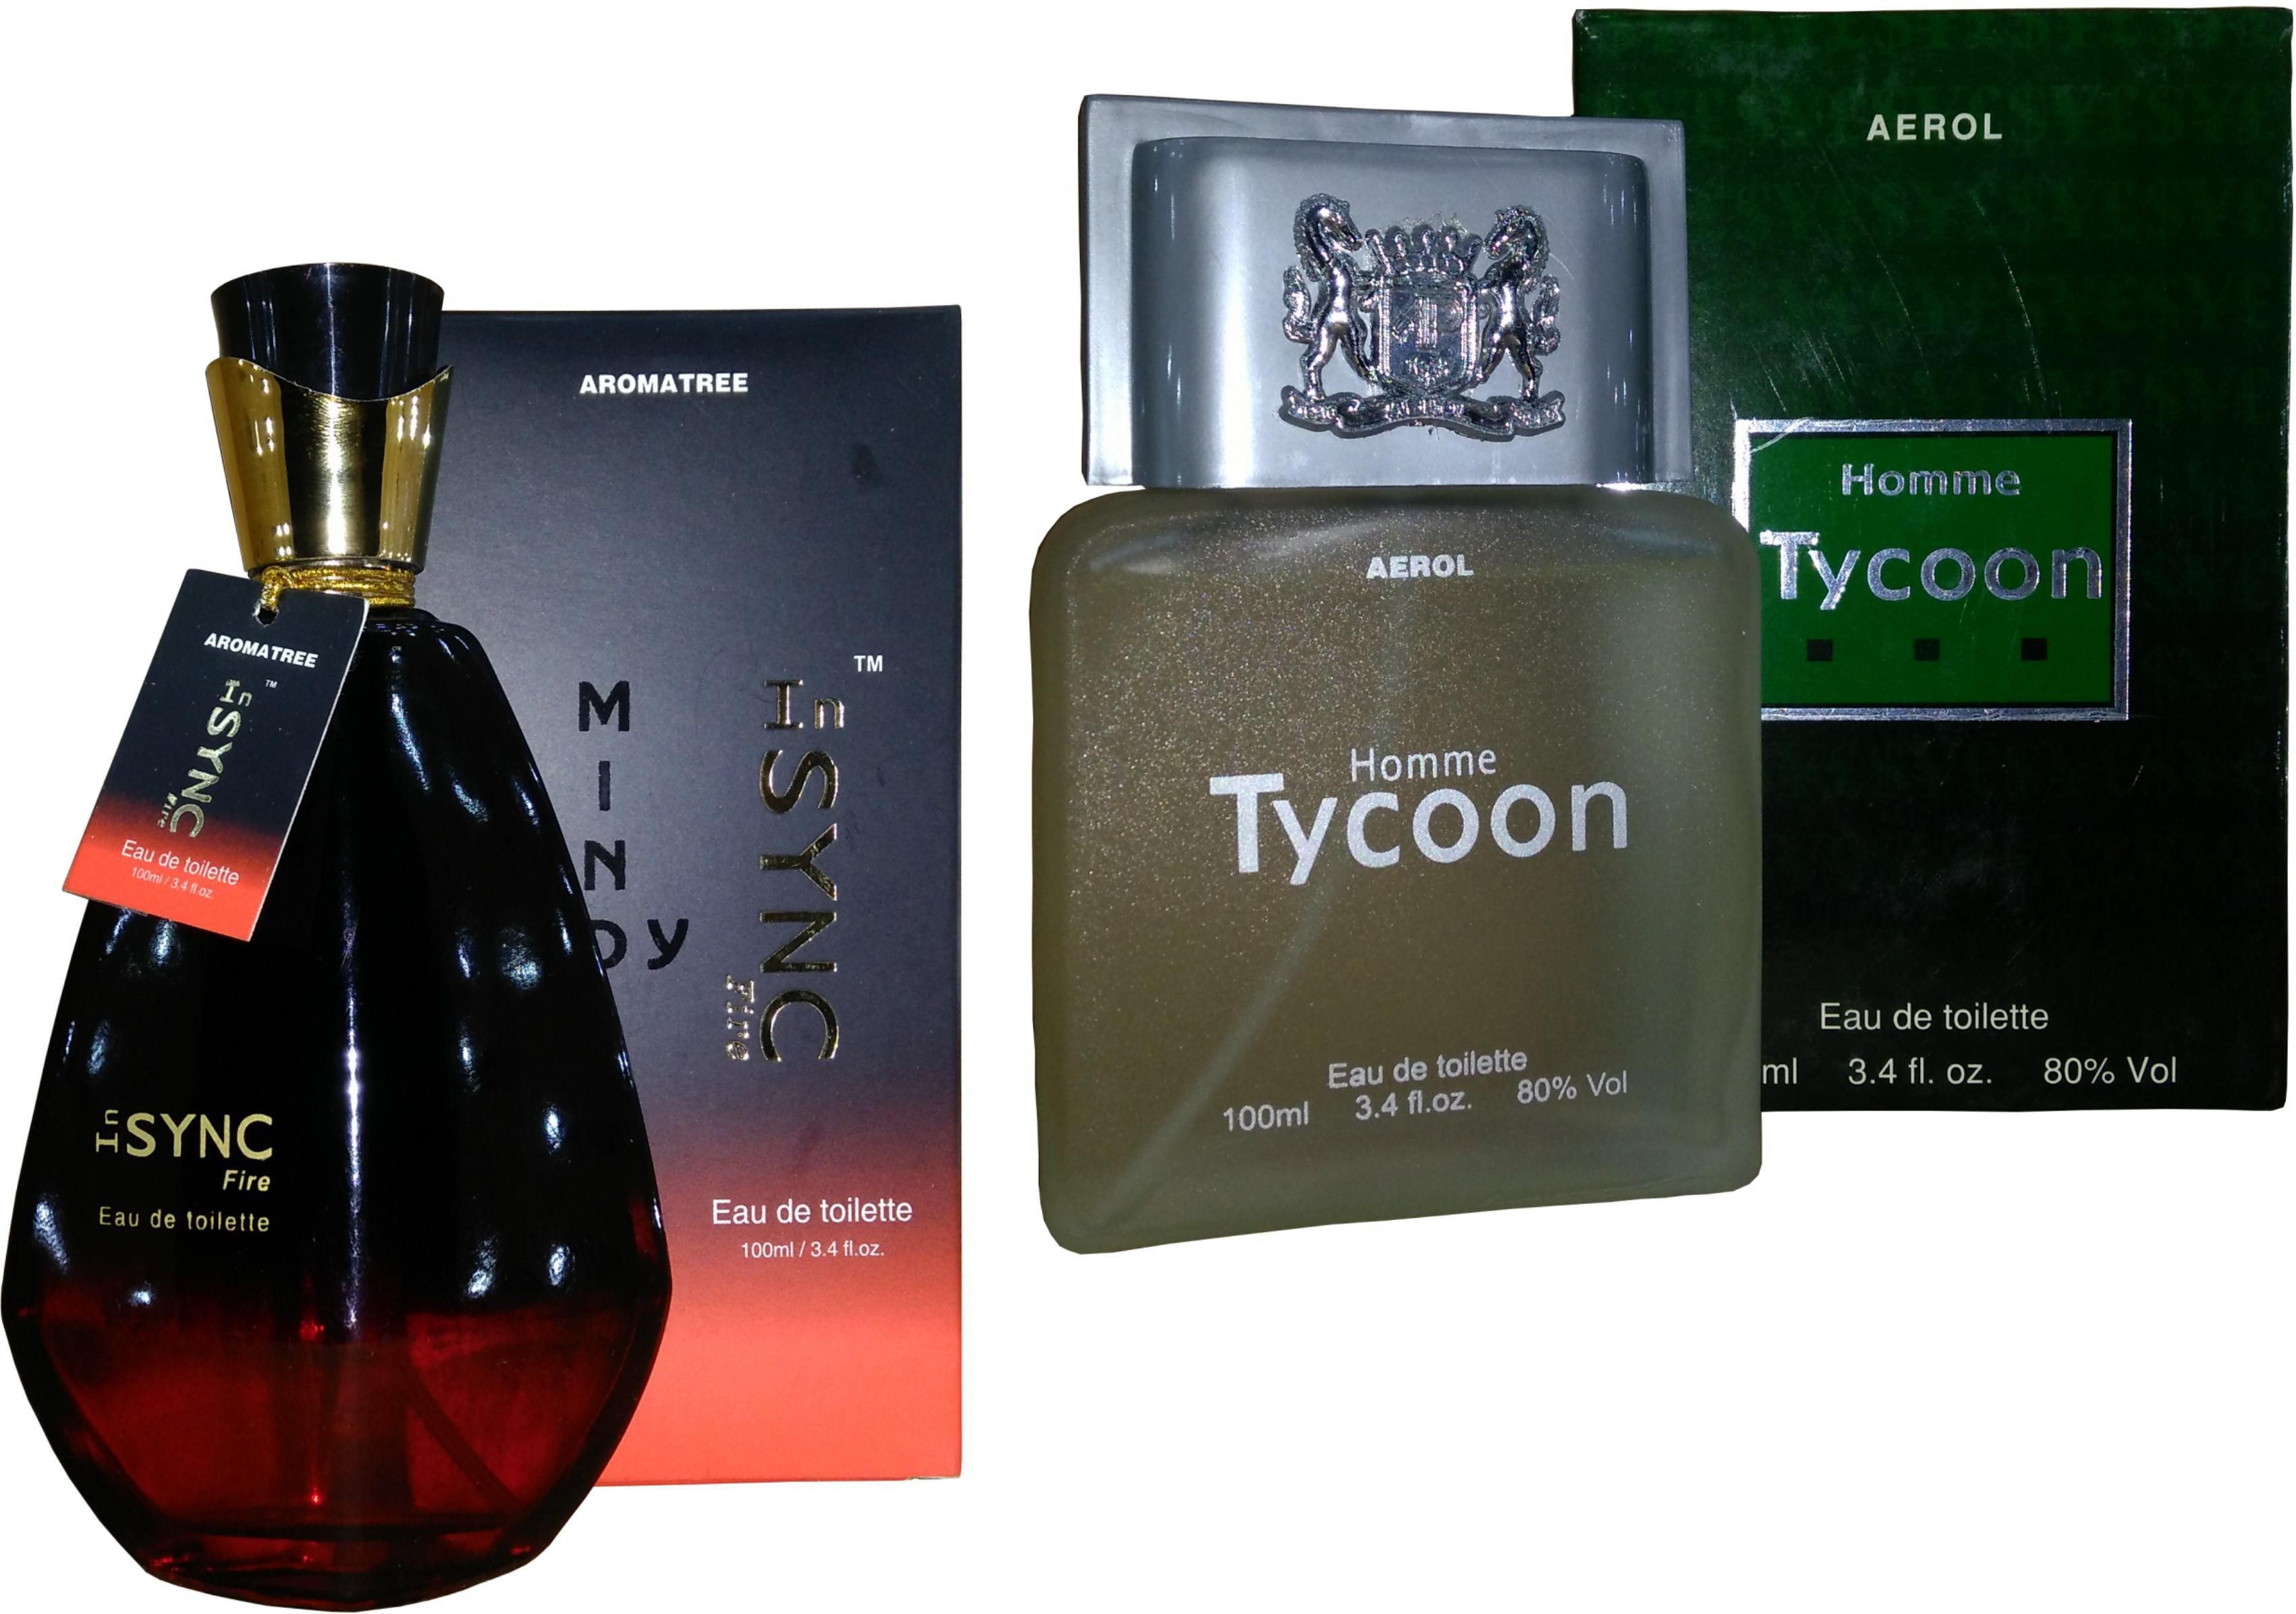 Aroma Tree InSYNC Fire Perfume And Homme Tycoon Perfume Set Combo Set(Set of 2)